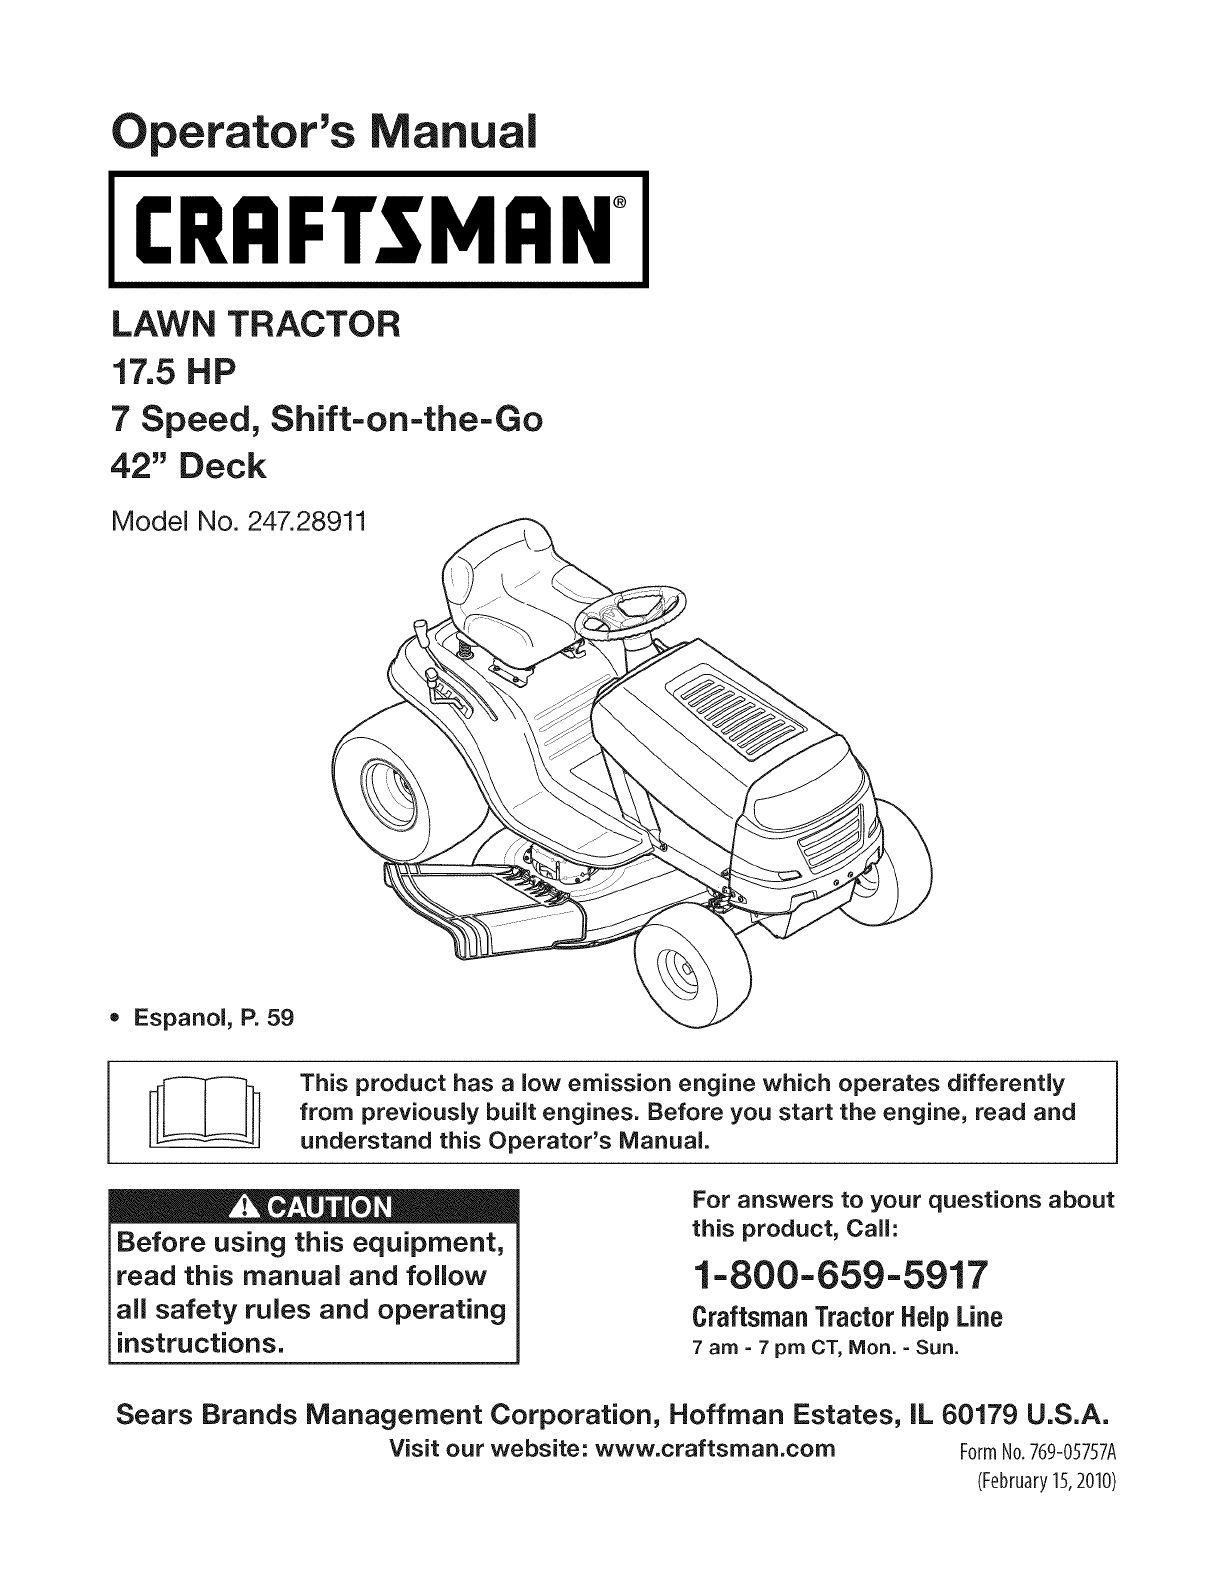 8e7b3384 e1d3 48fe bee0 c4dbc25d375e bg1 craftsman lawn mower 28911 user guide manualsonline com craftsman lawn tractor wiring schematic at reclaimingppi.co